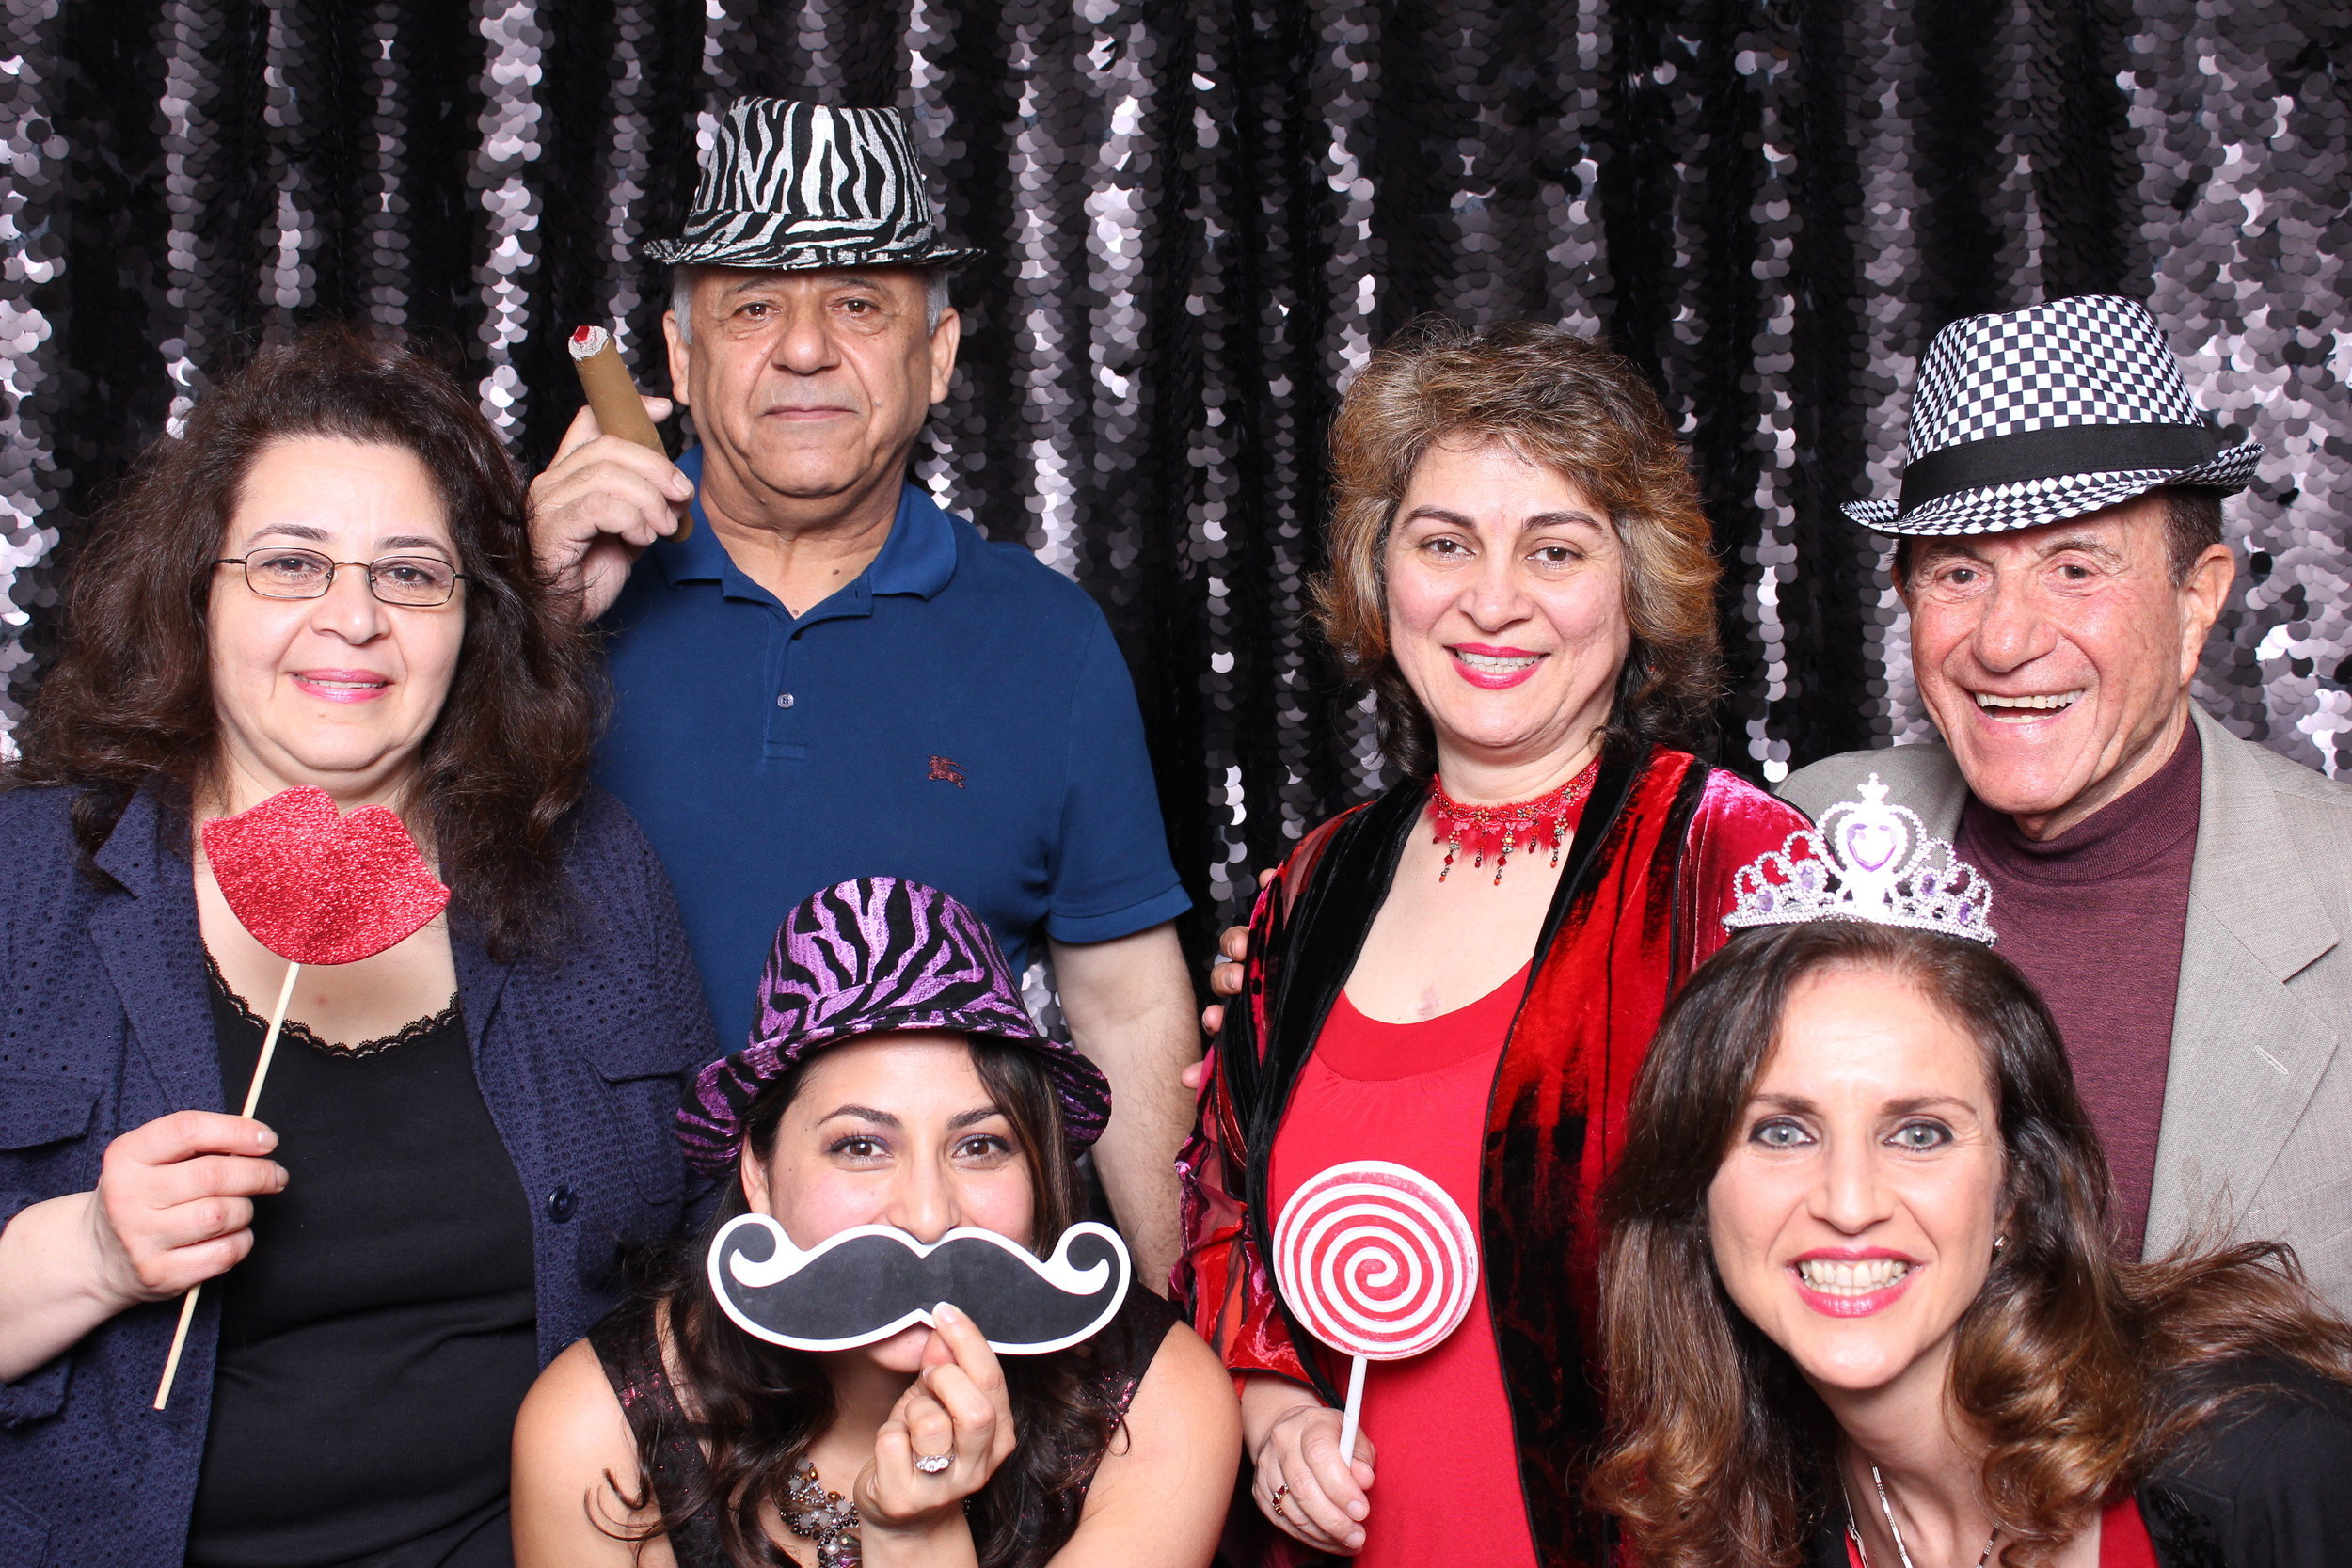 Valentine's Day party photobooth